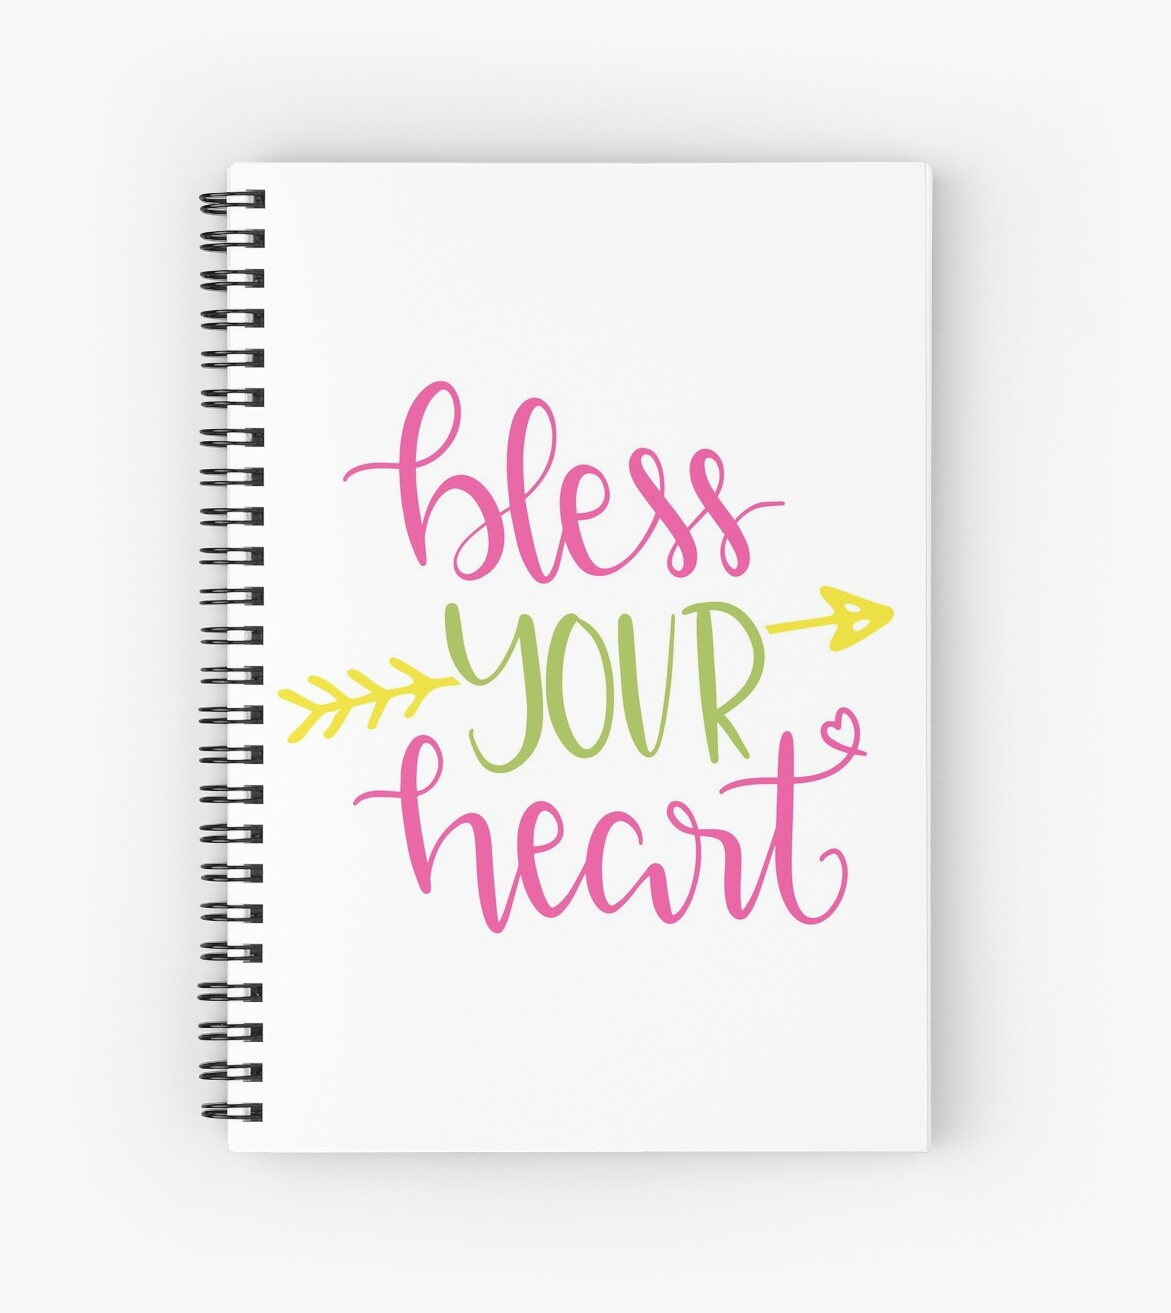 Bless Your Heart by greenoriginals